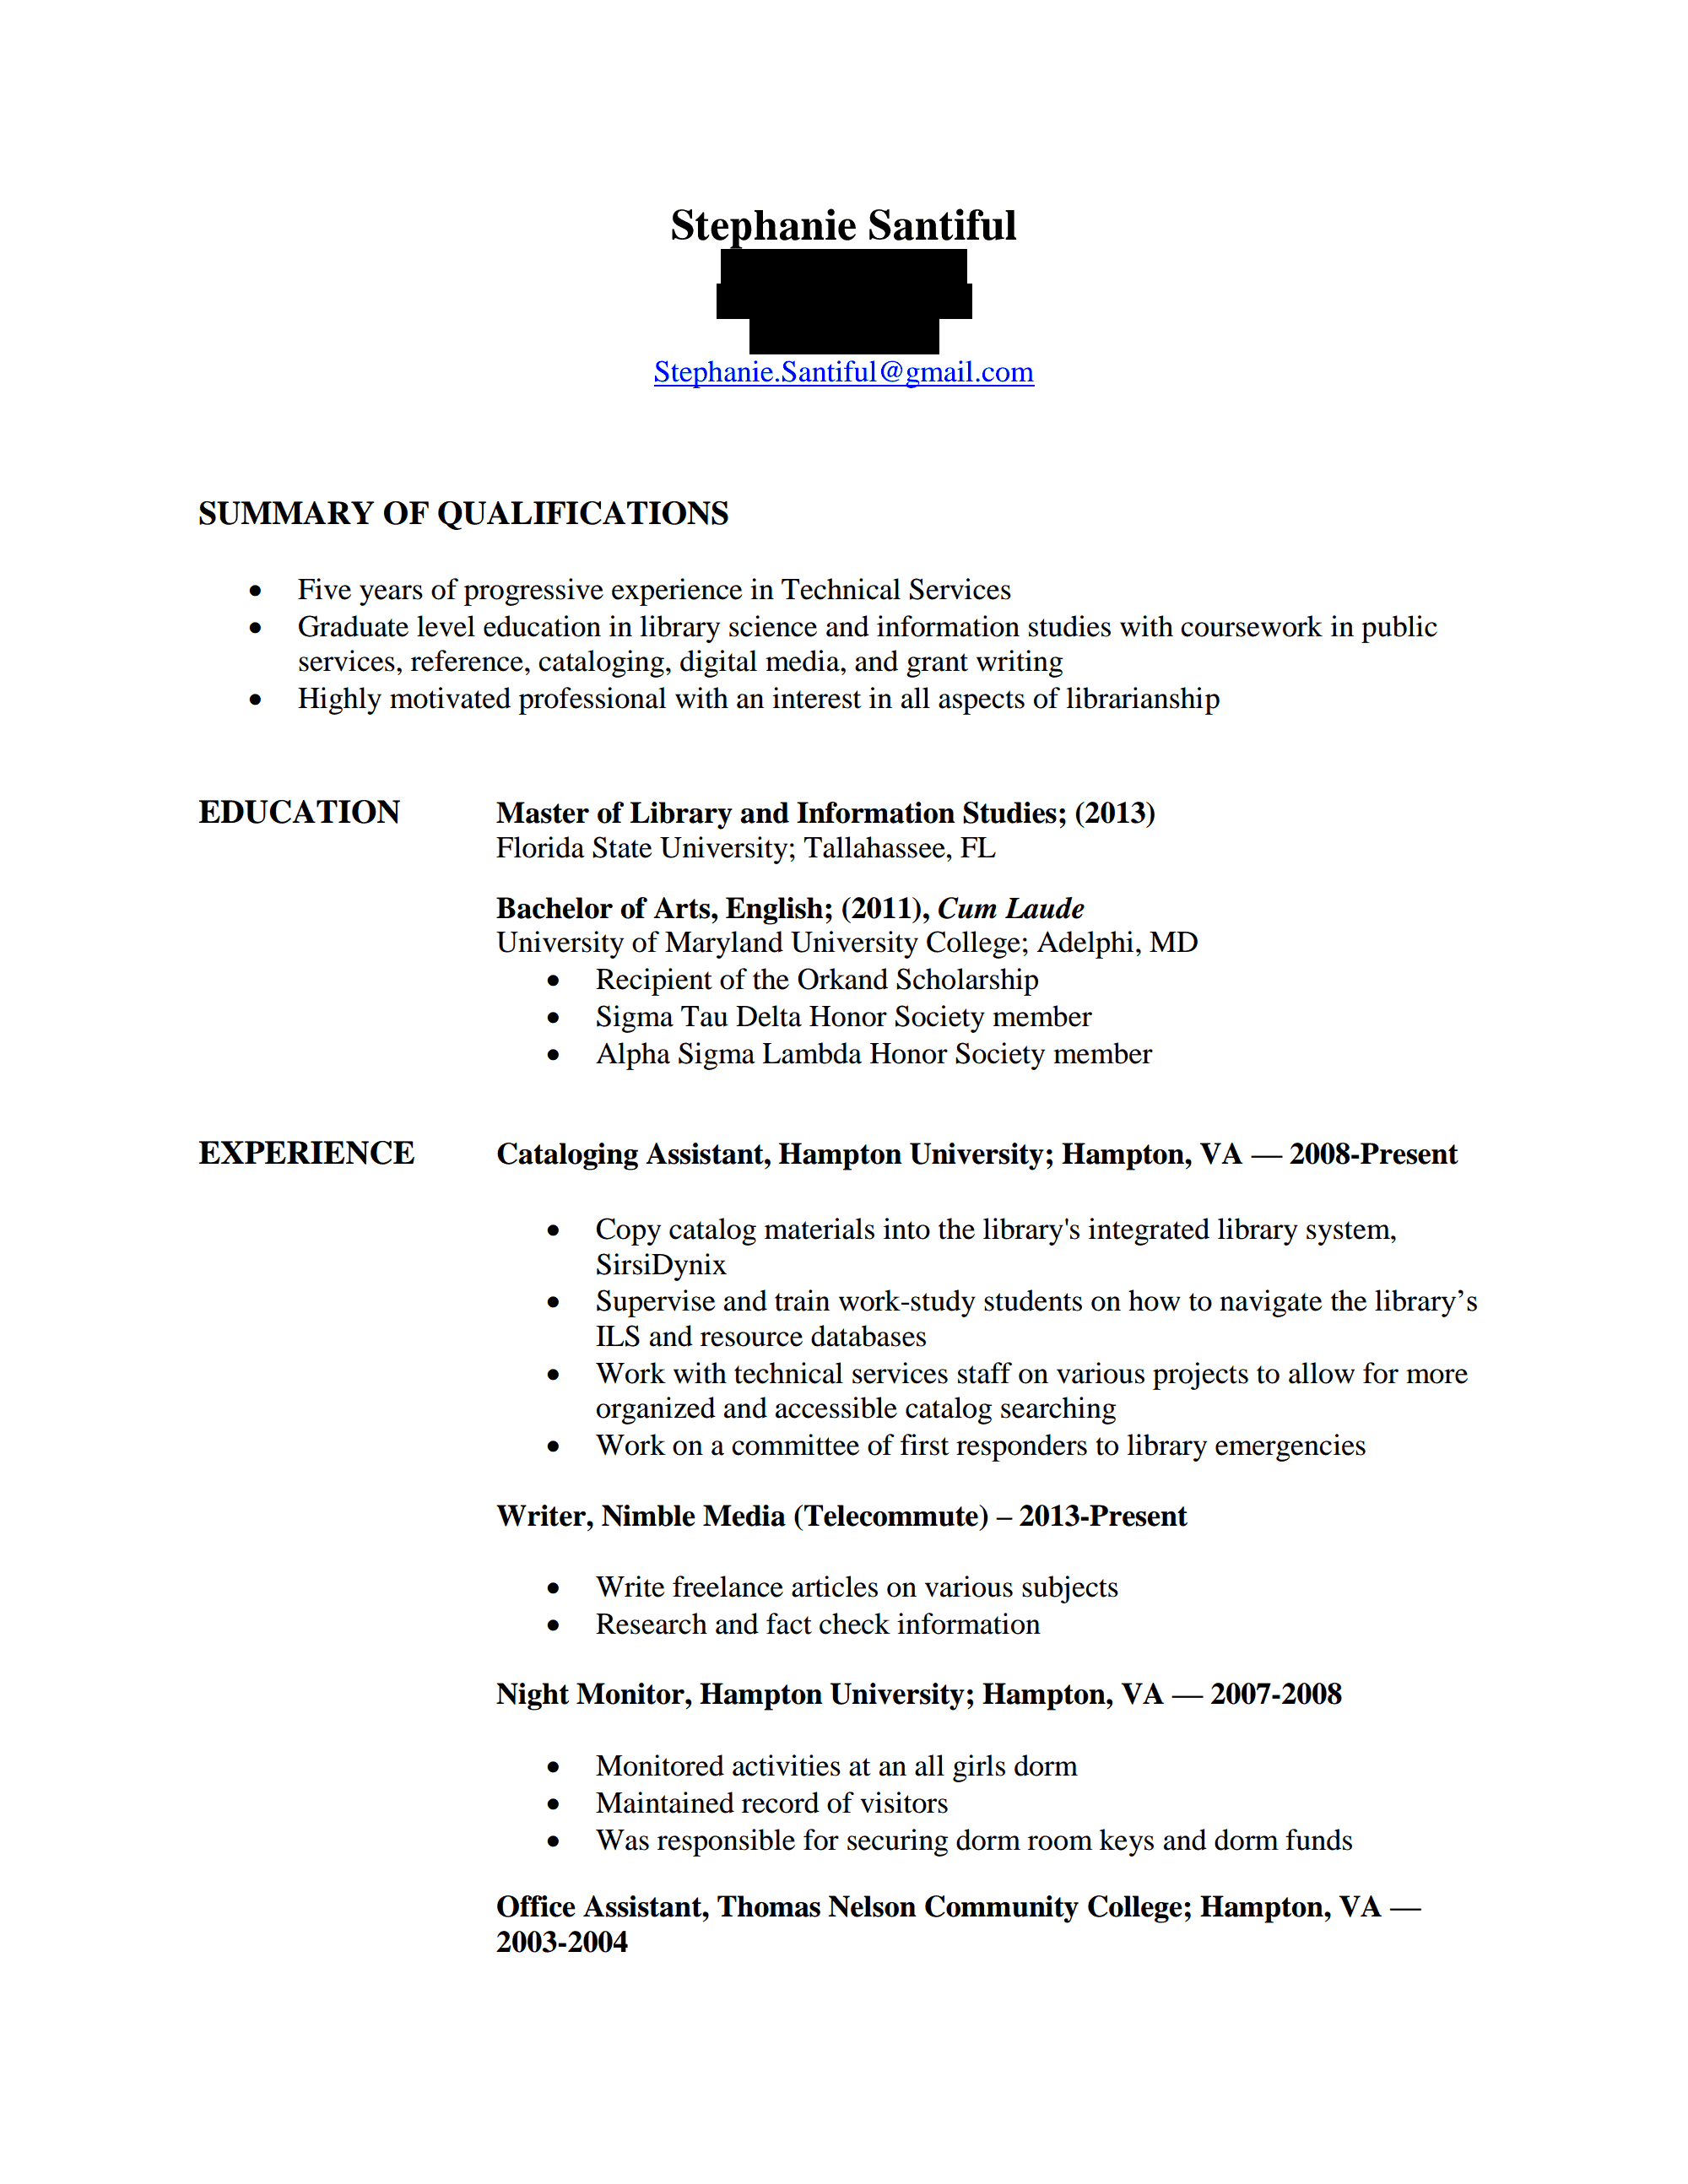 Grant Writer Resume   Resume Templates    Writer Resumes   Free Sample  Example Format Download Free   grant  writing resume